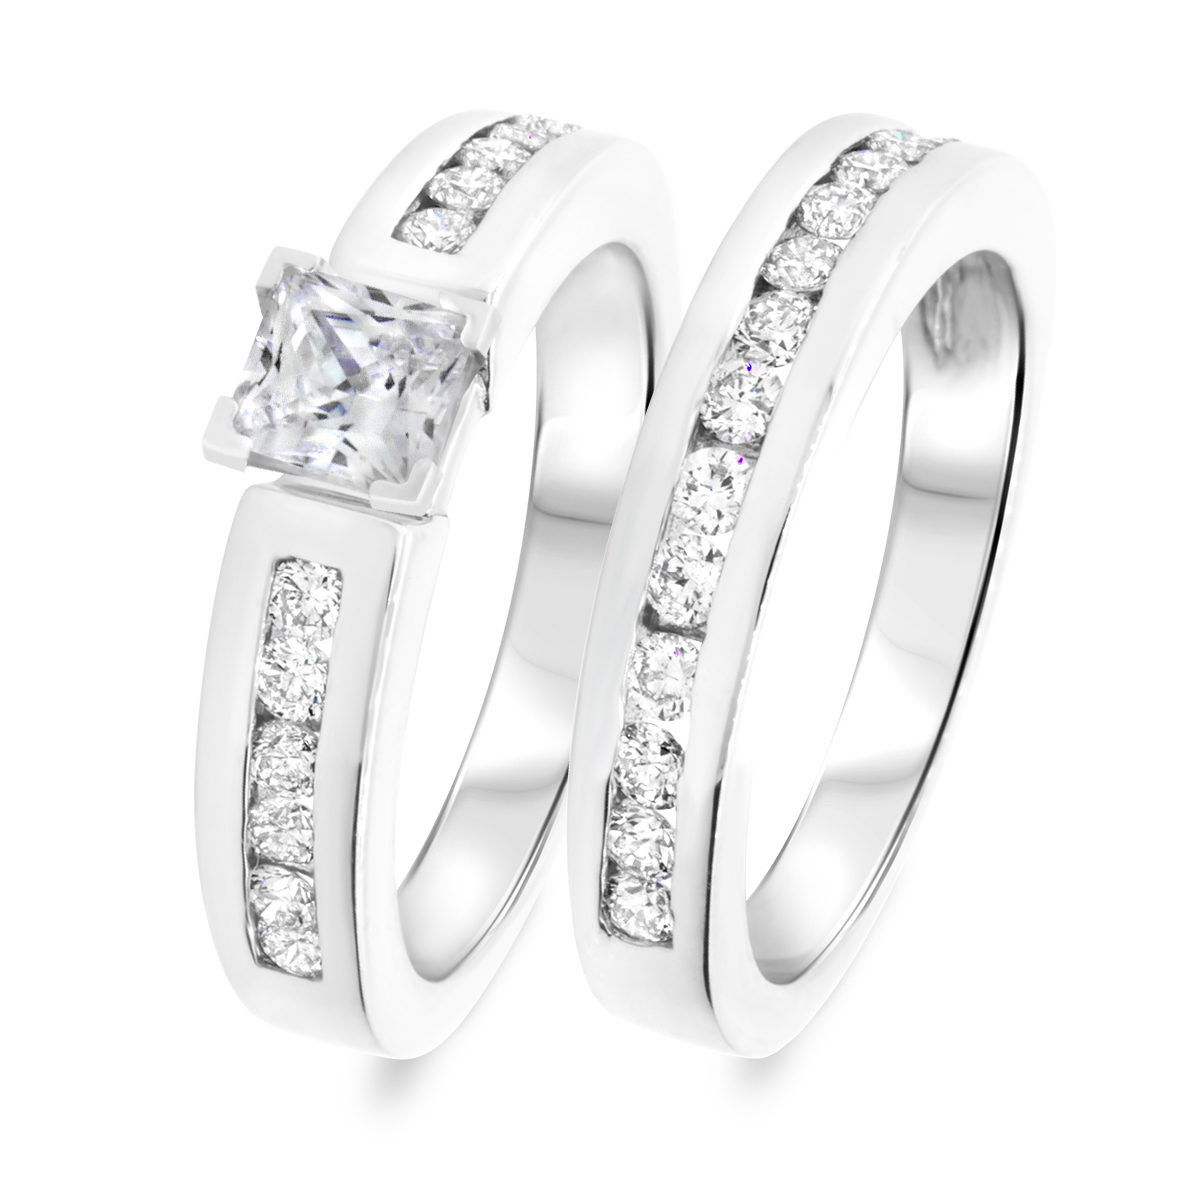 1 2/3 CT. T.W. Diamond Women's Bridal Wedding Ring Set 10K White Gold